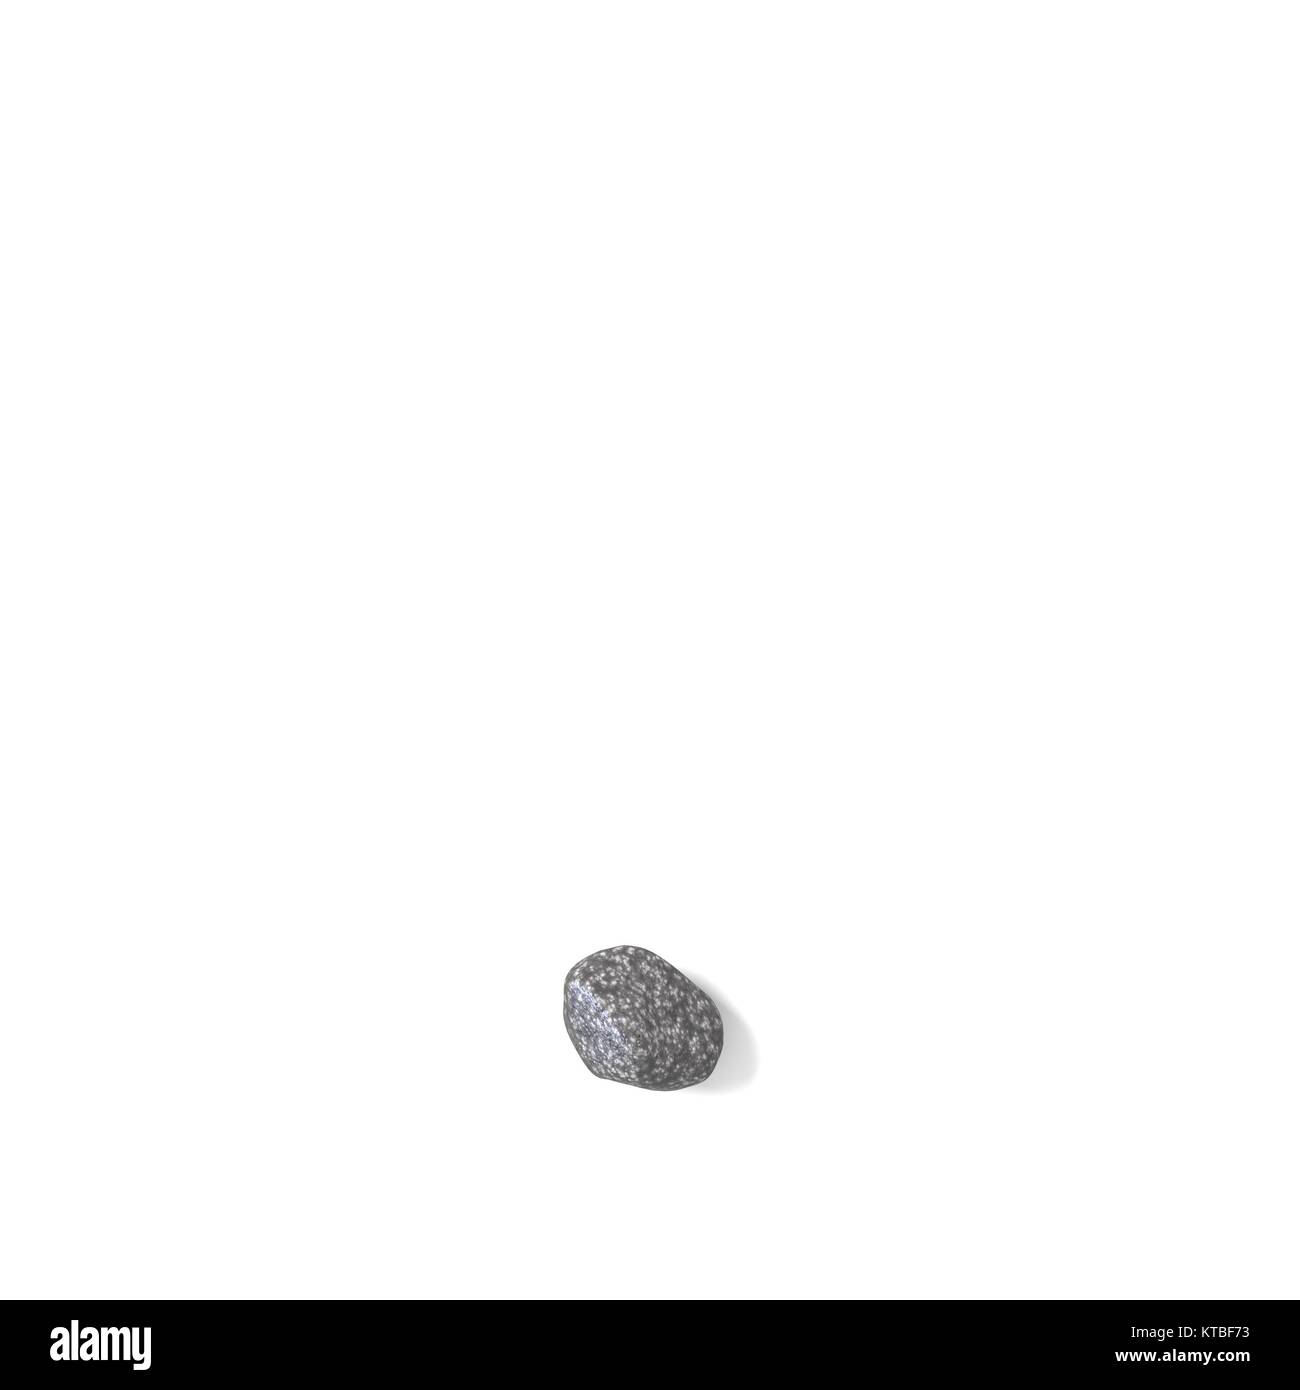 Period punctuation mark made of rocks 3D - Stock Image